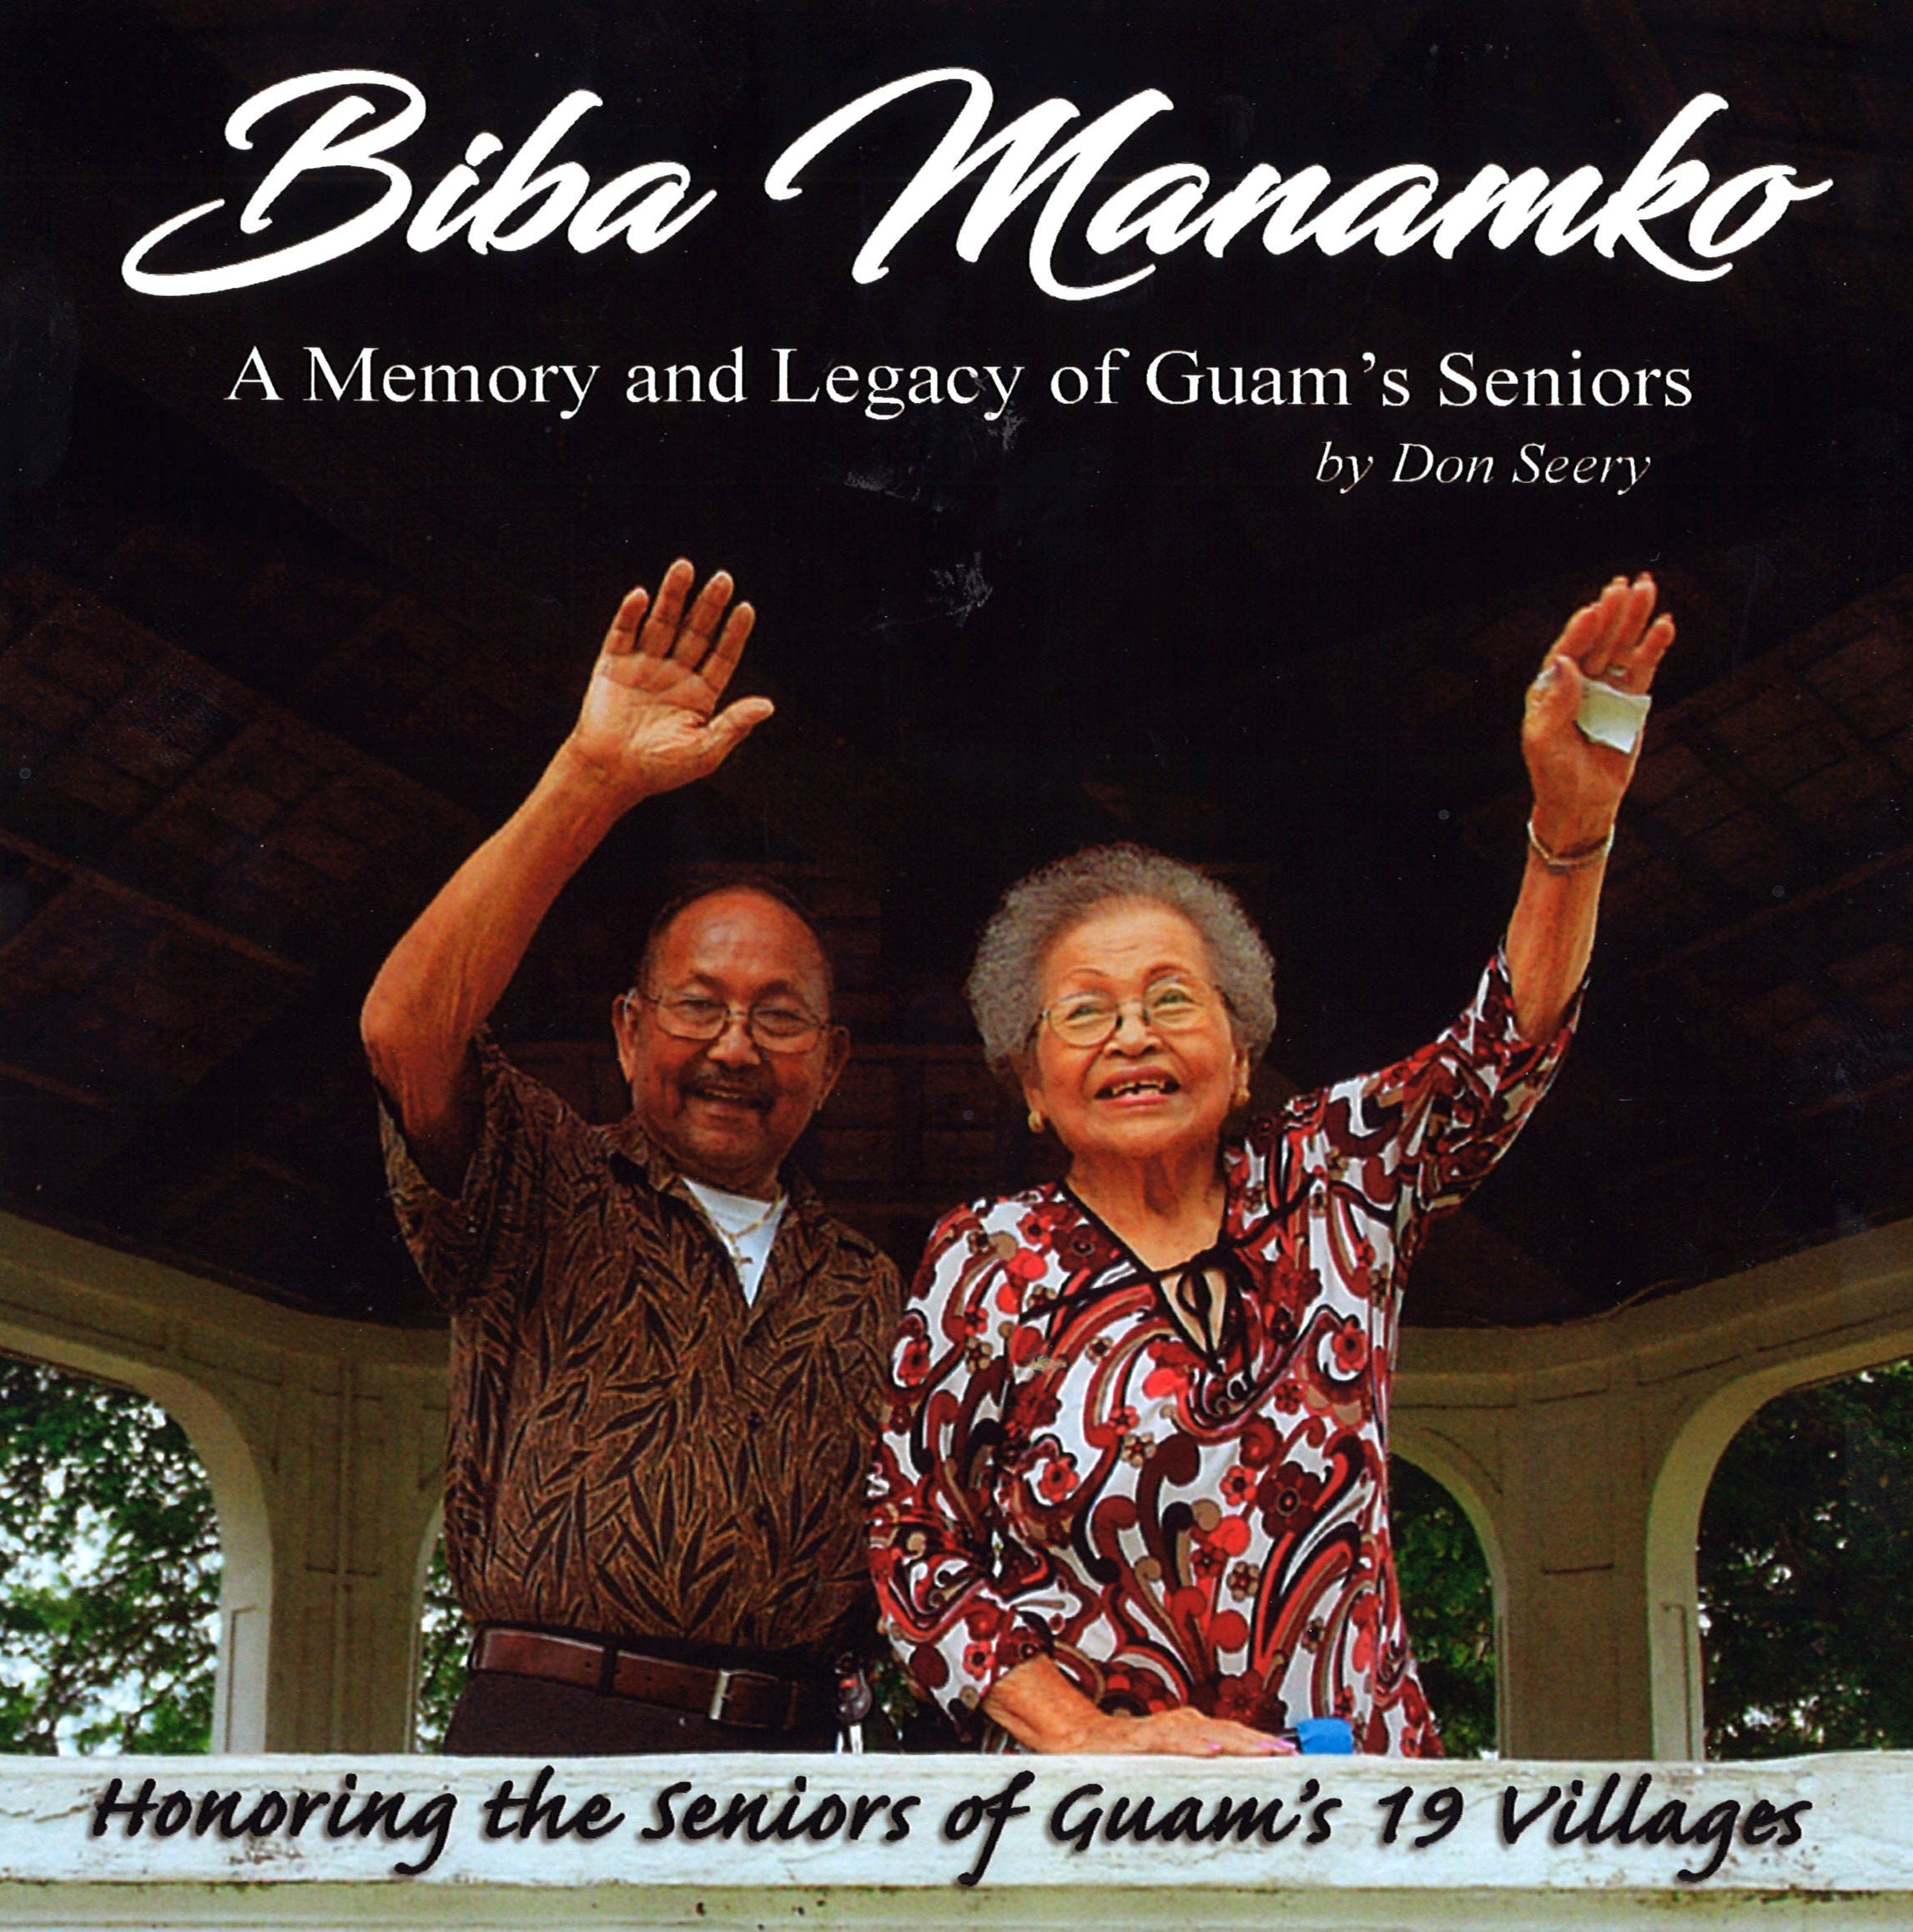 Book honors island's manamko'